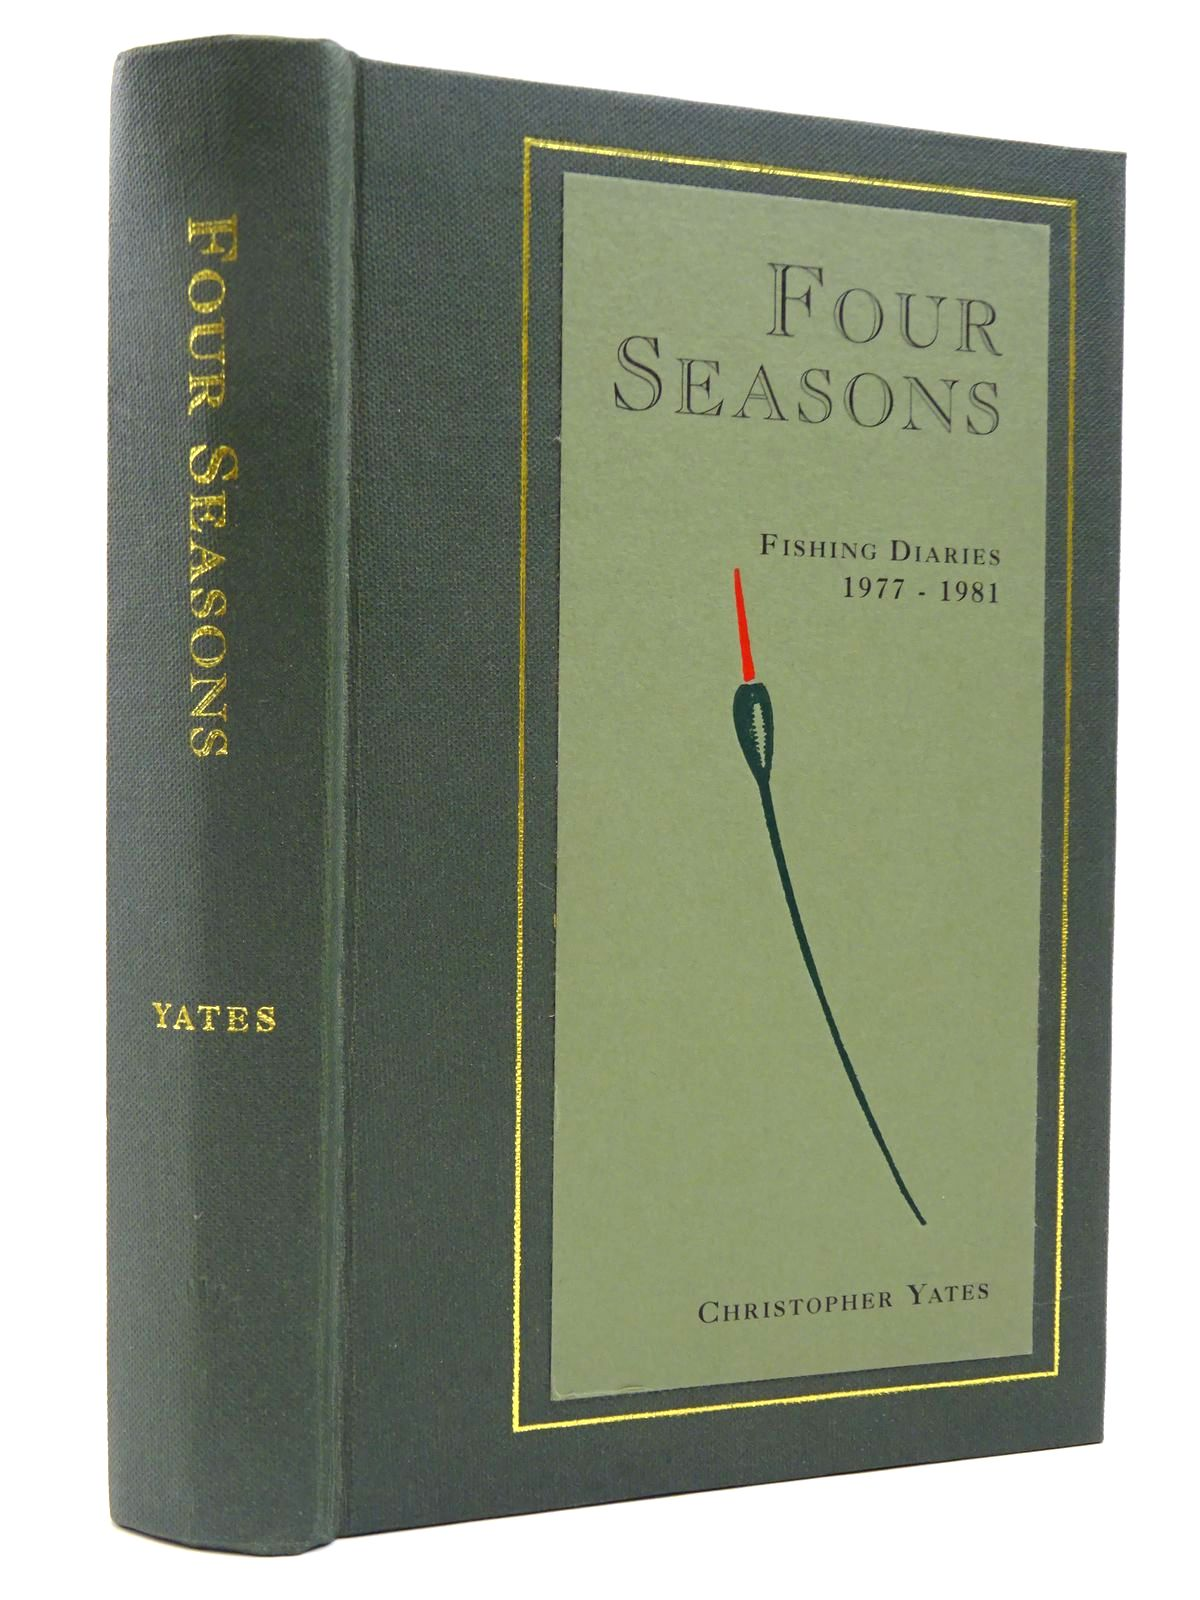 Photo of FOUR SEASONS BEING THE FISHING DIARIES OF CHRISTOPHER YATES JUNE 1977 - MARCH 1981- Stock Number: 2129556